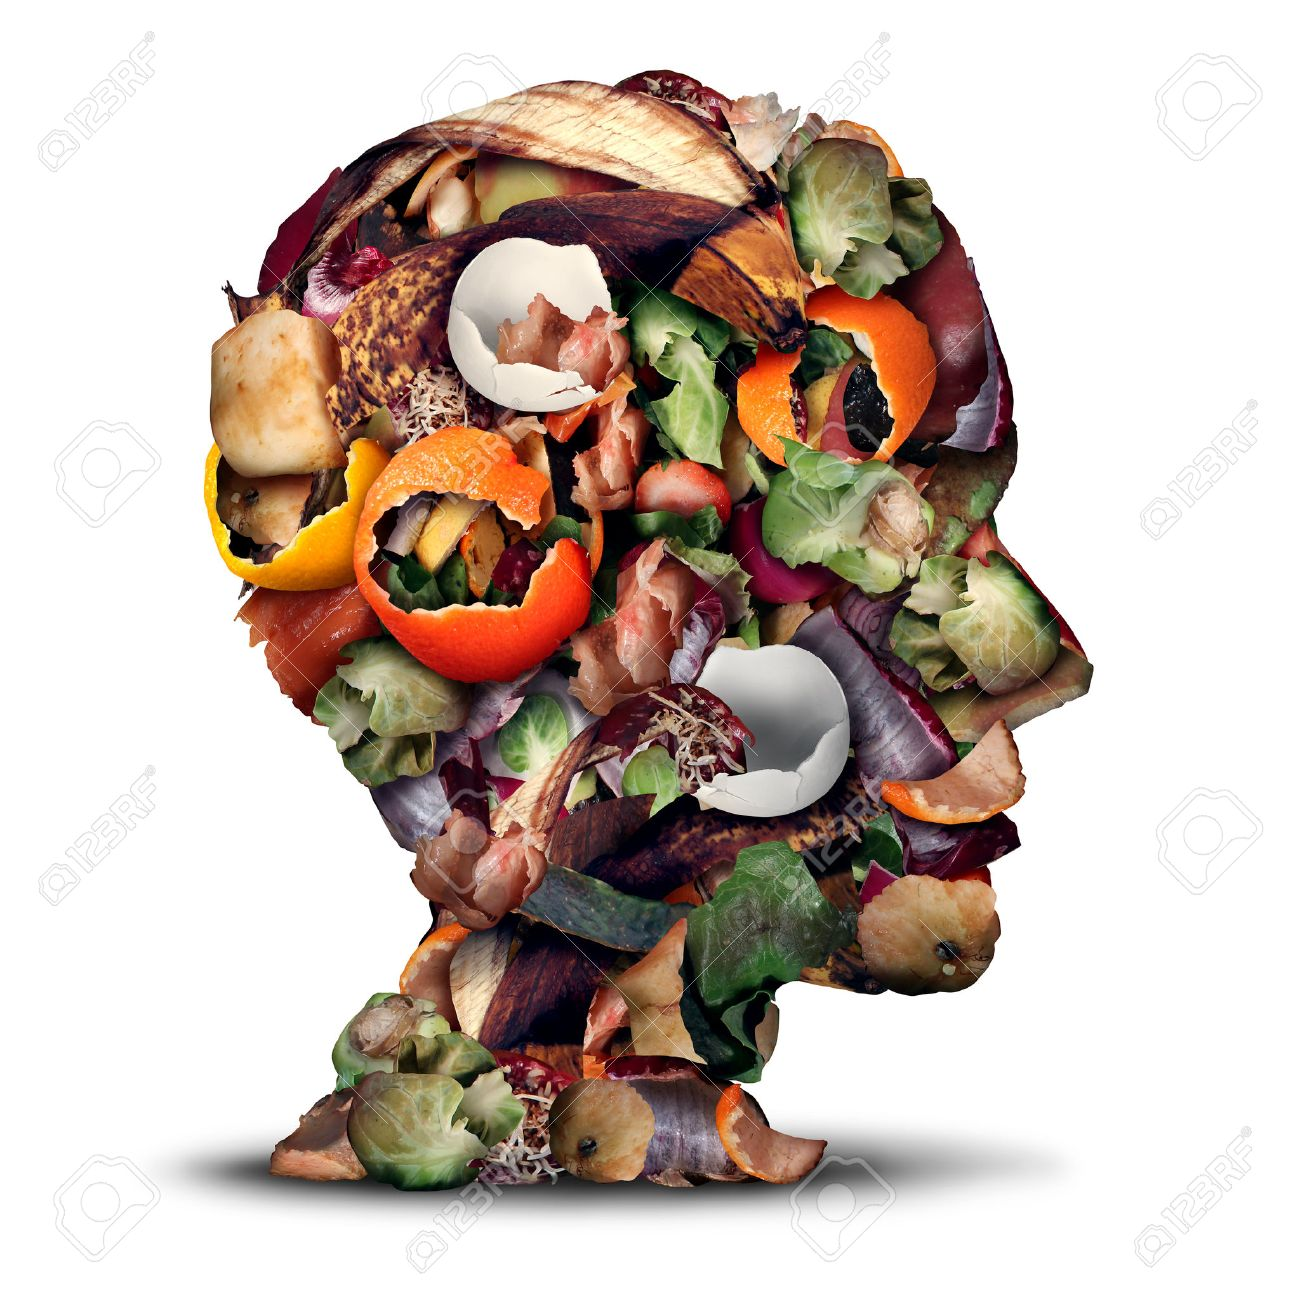 Compost thinking and composting concept as a pile of rotting kitchen fruits egg shells and vegetable food scraps shaped as a human head as organic waste for recycling as an environmentally responsible icon. - 52657698